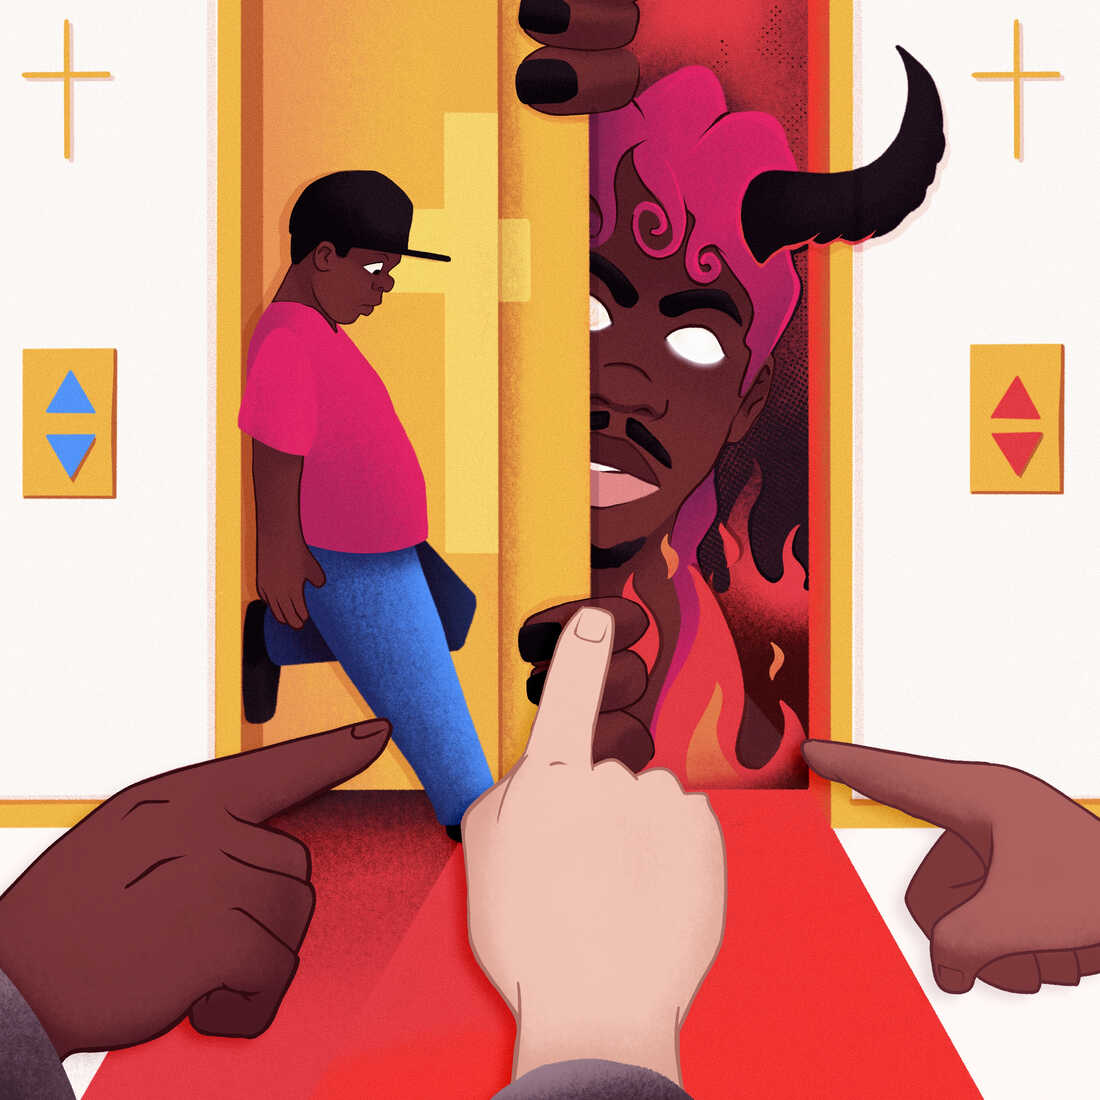 """Writer Ashon Crawley says Lil Nas X's """"Montero (Call Me By Your Name)"""" touches on a lasting truth about young queer people's understanding of hell and the devil."""